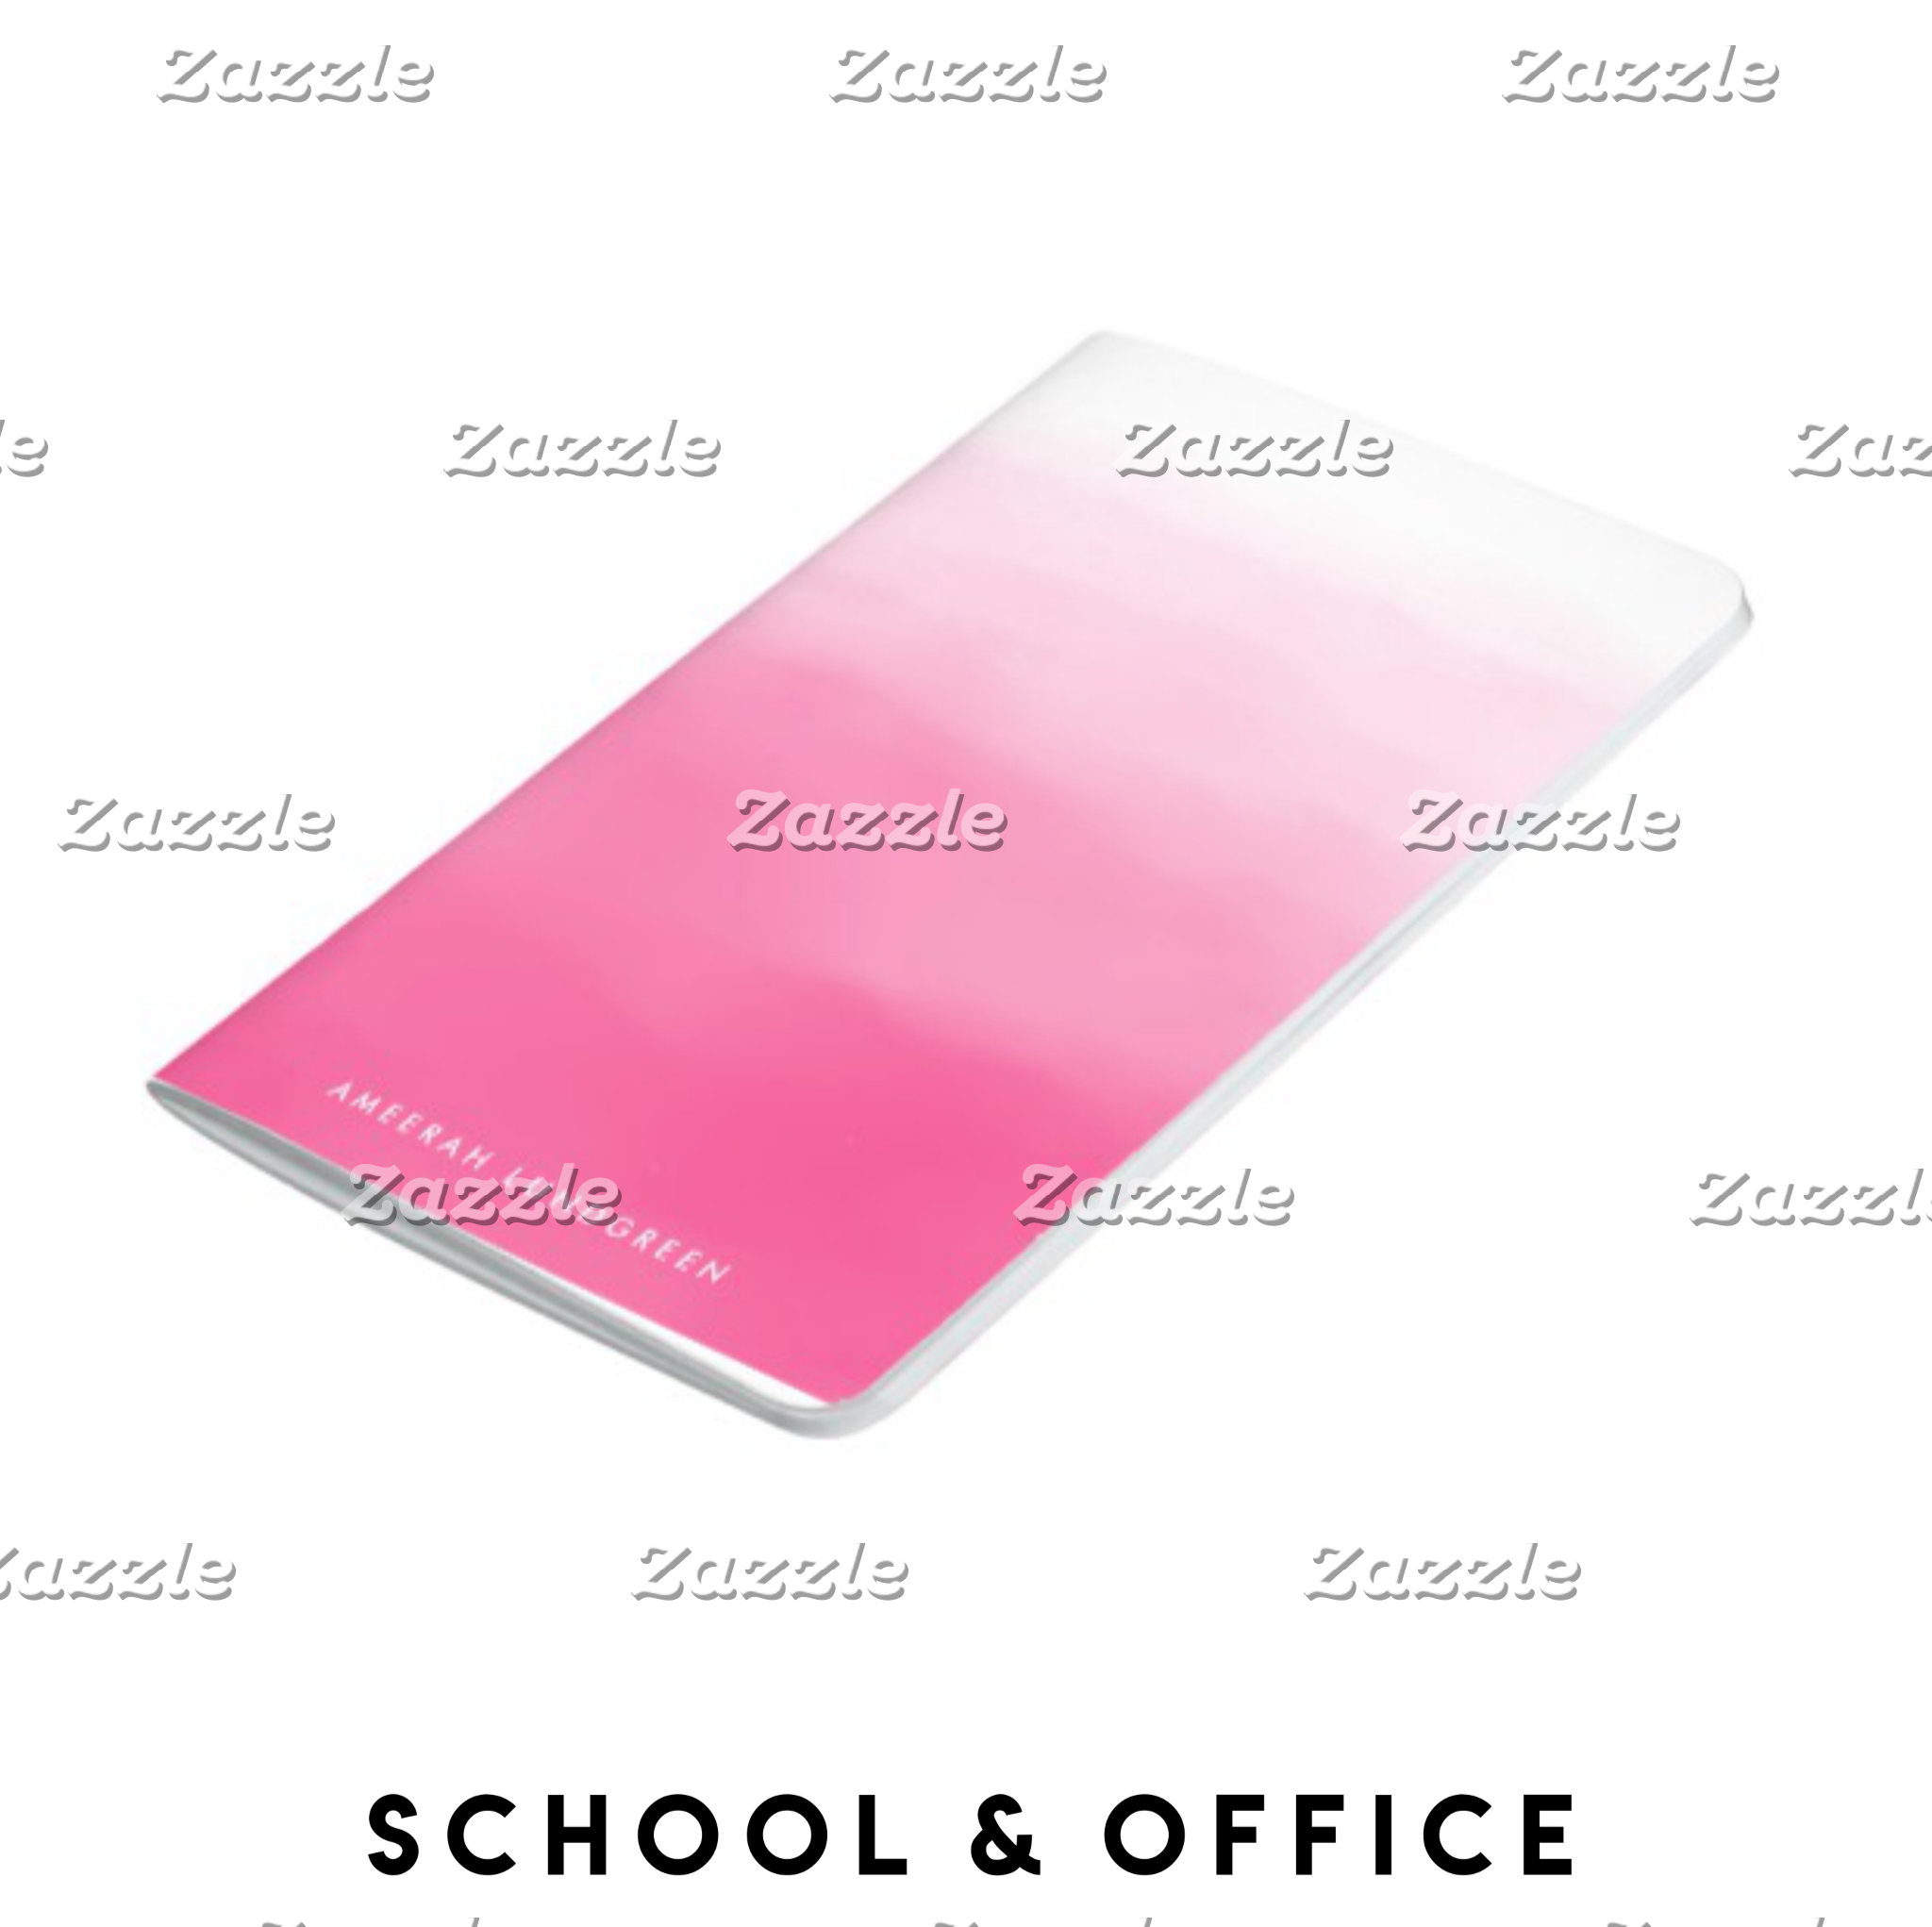 SCHOOL + OFFICE